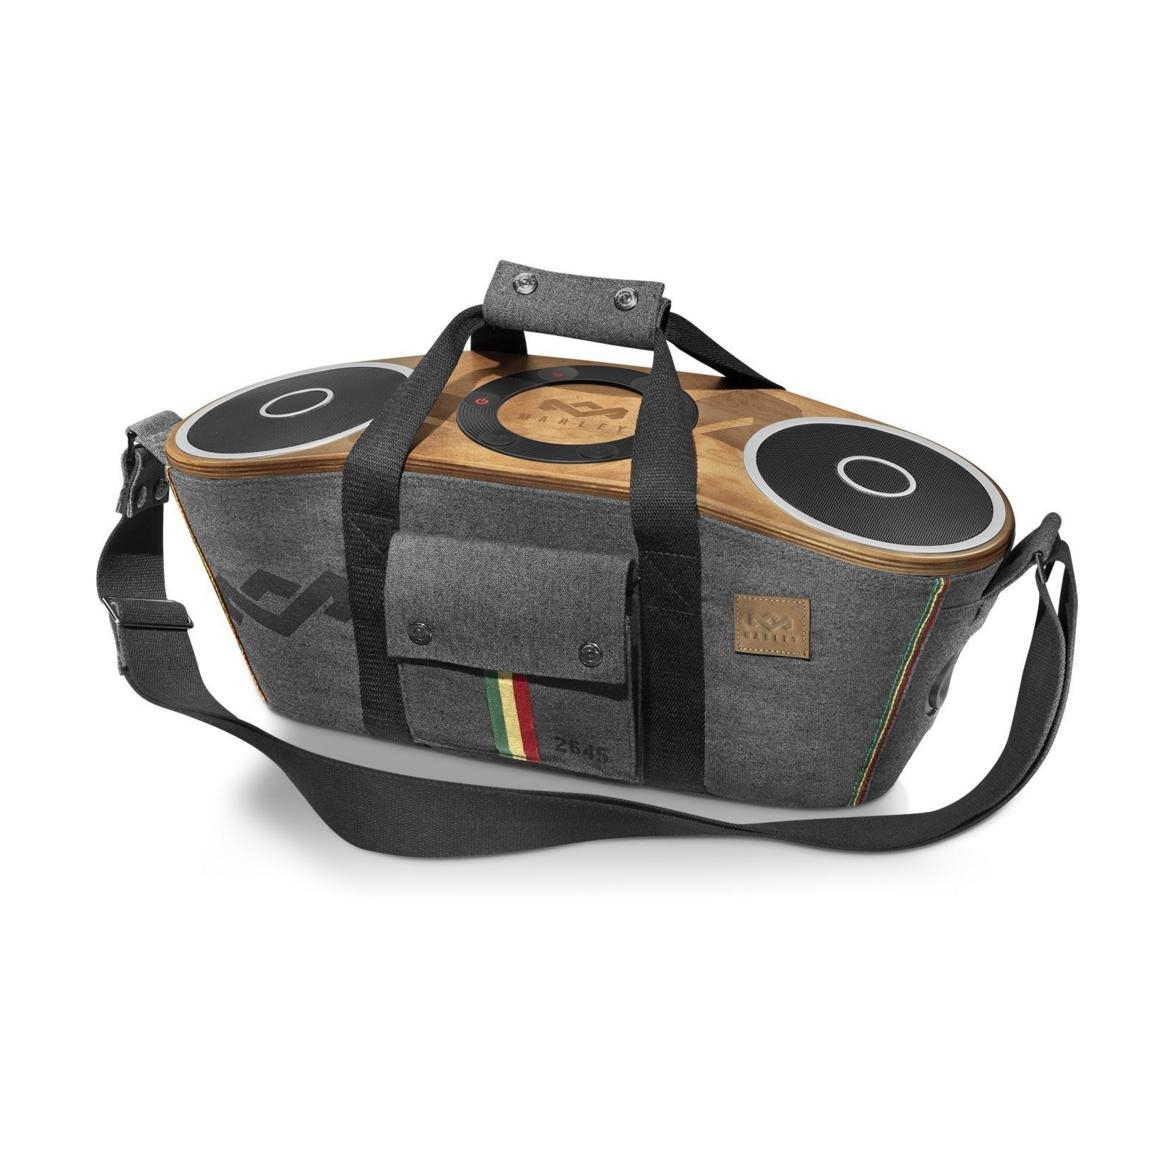 the house of marley bag of riddim portable bluetooth audio system